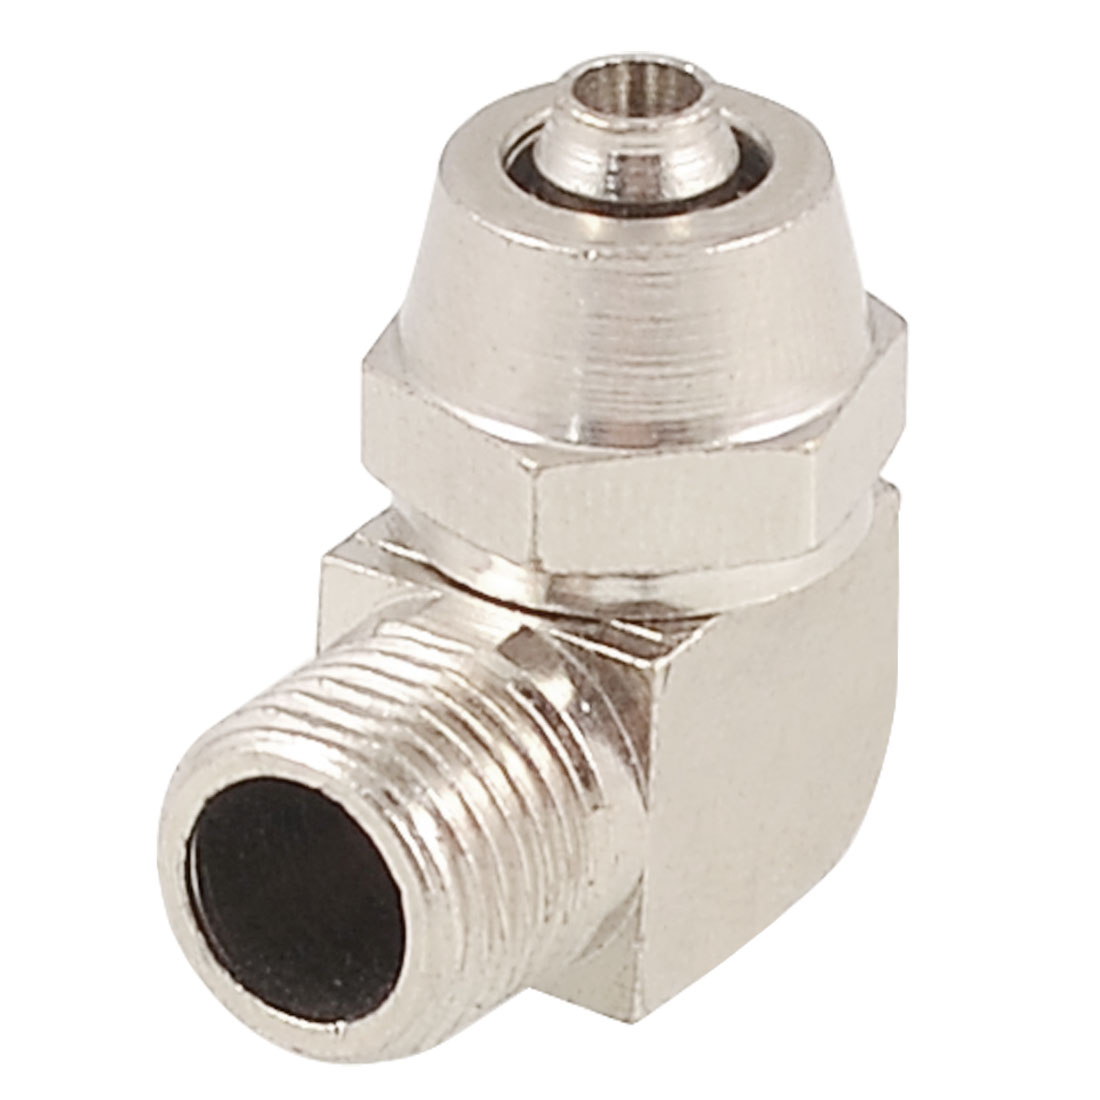 6mm Tube 9.5mm Thread L Shaped Right Angle Quick Coupler Adapter